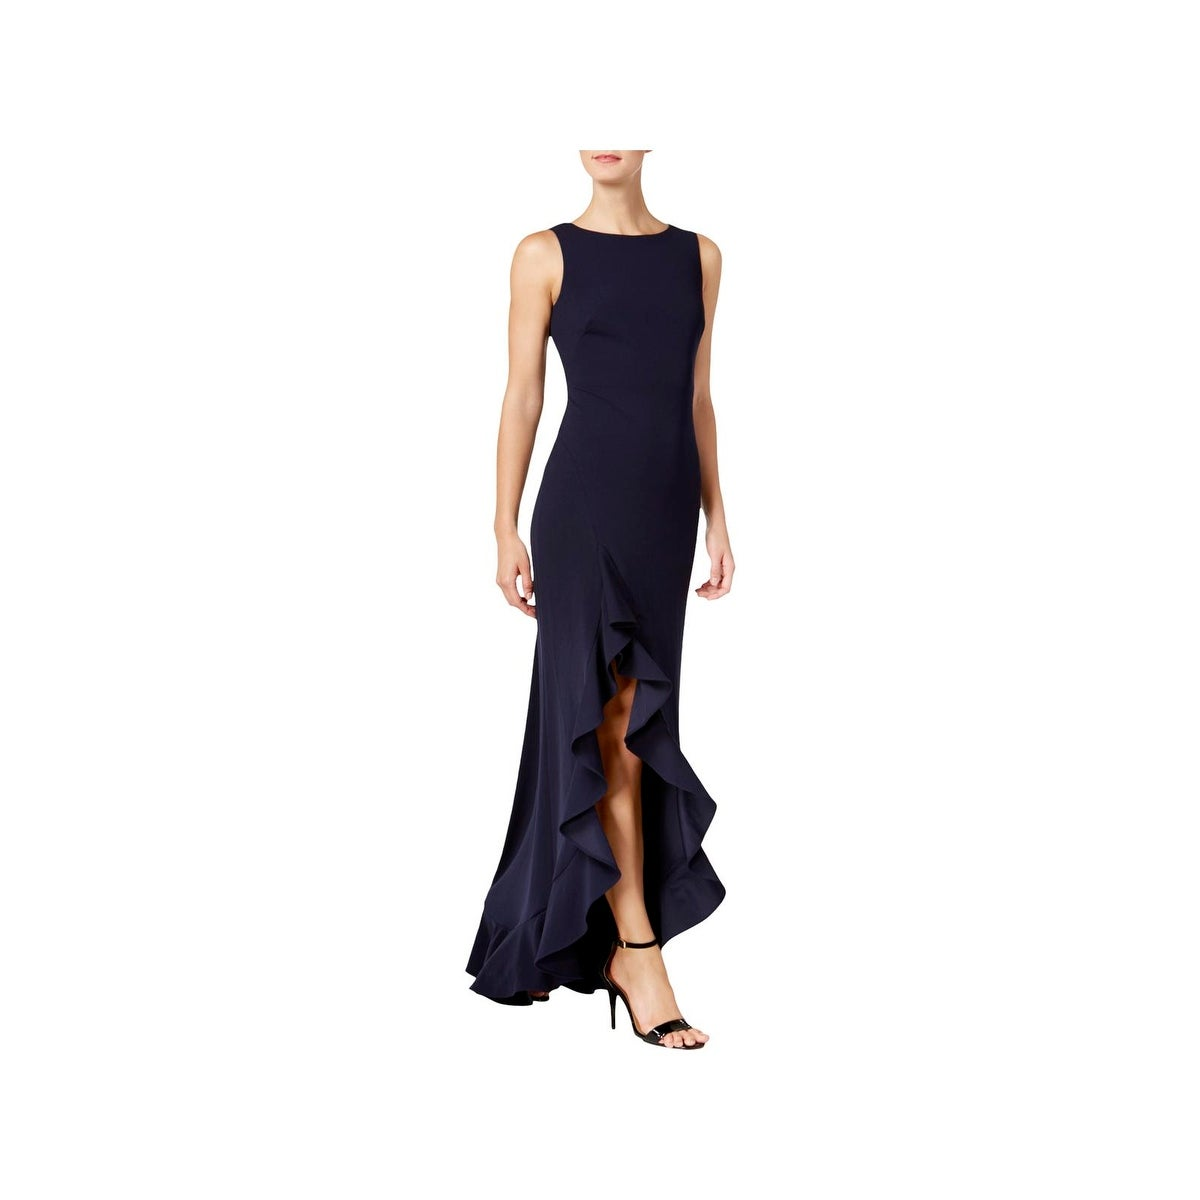 f9a4343212b80 Calvin Klein Dresses | Find Great Women's Clothing Deals Shopping at  Overstock